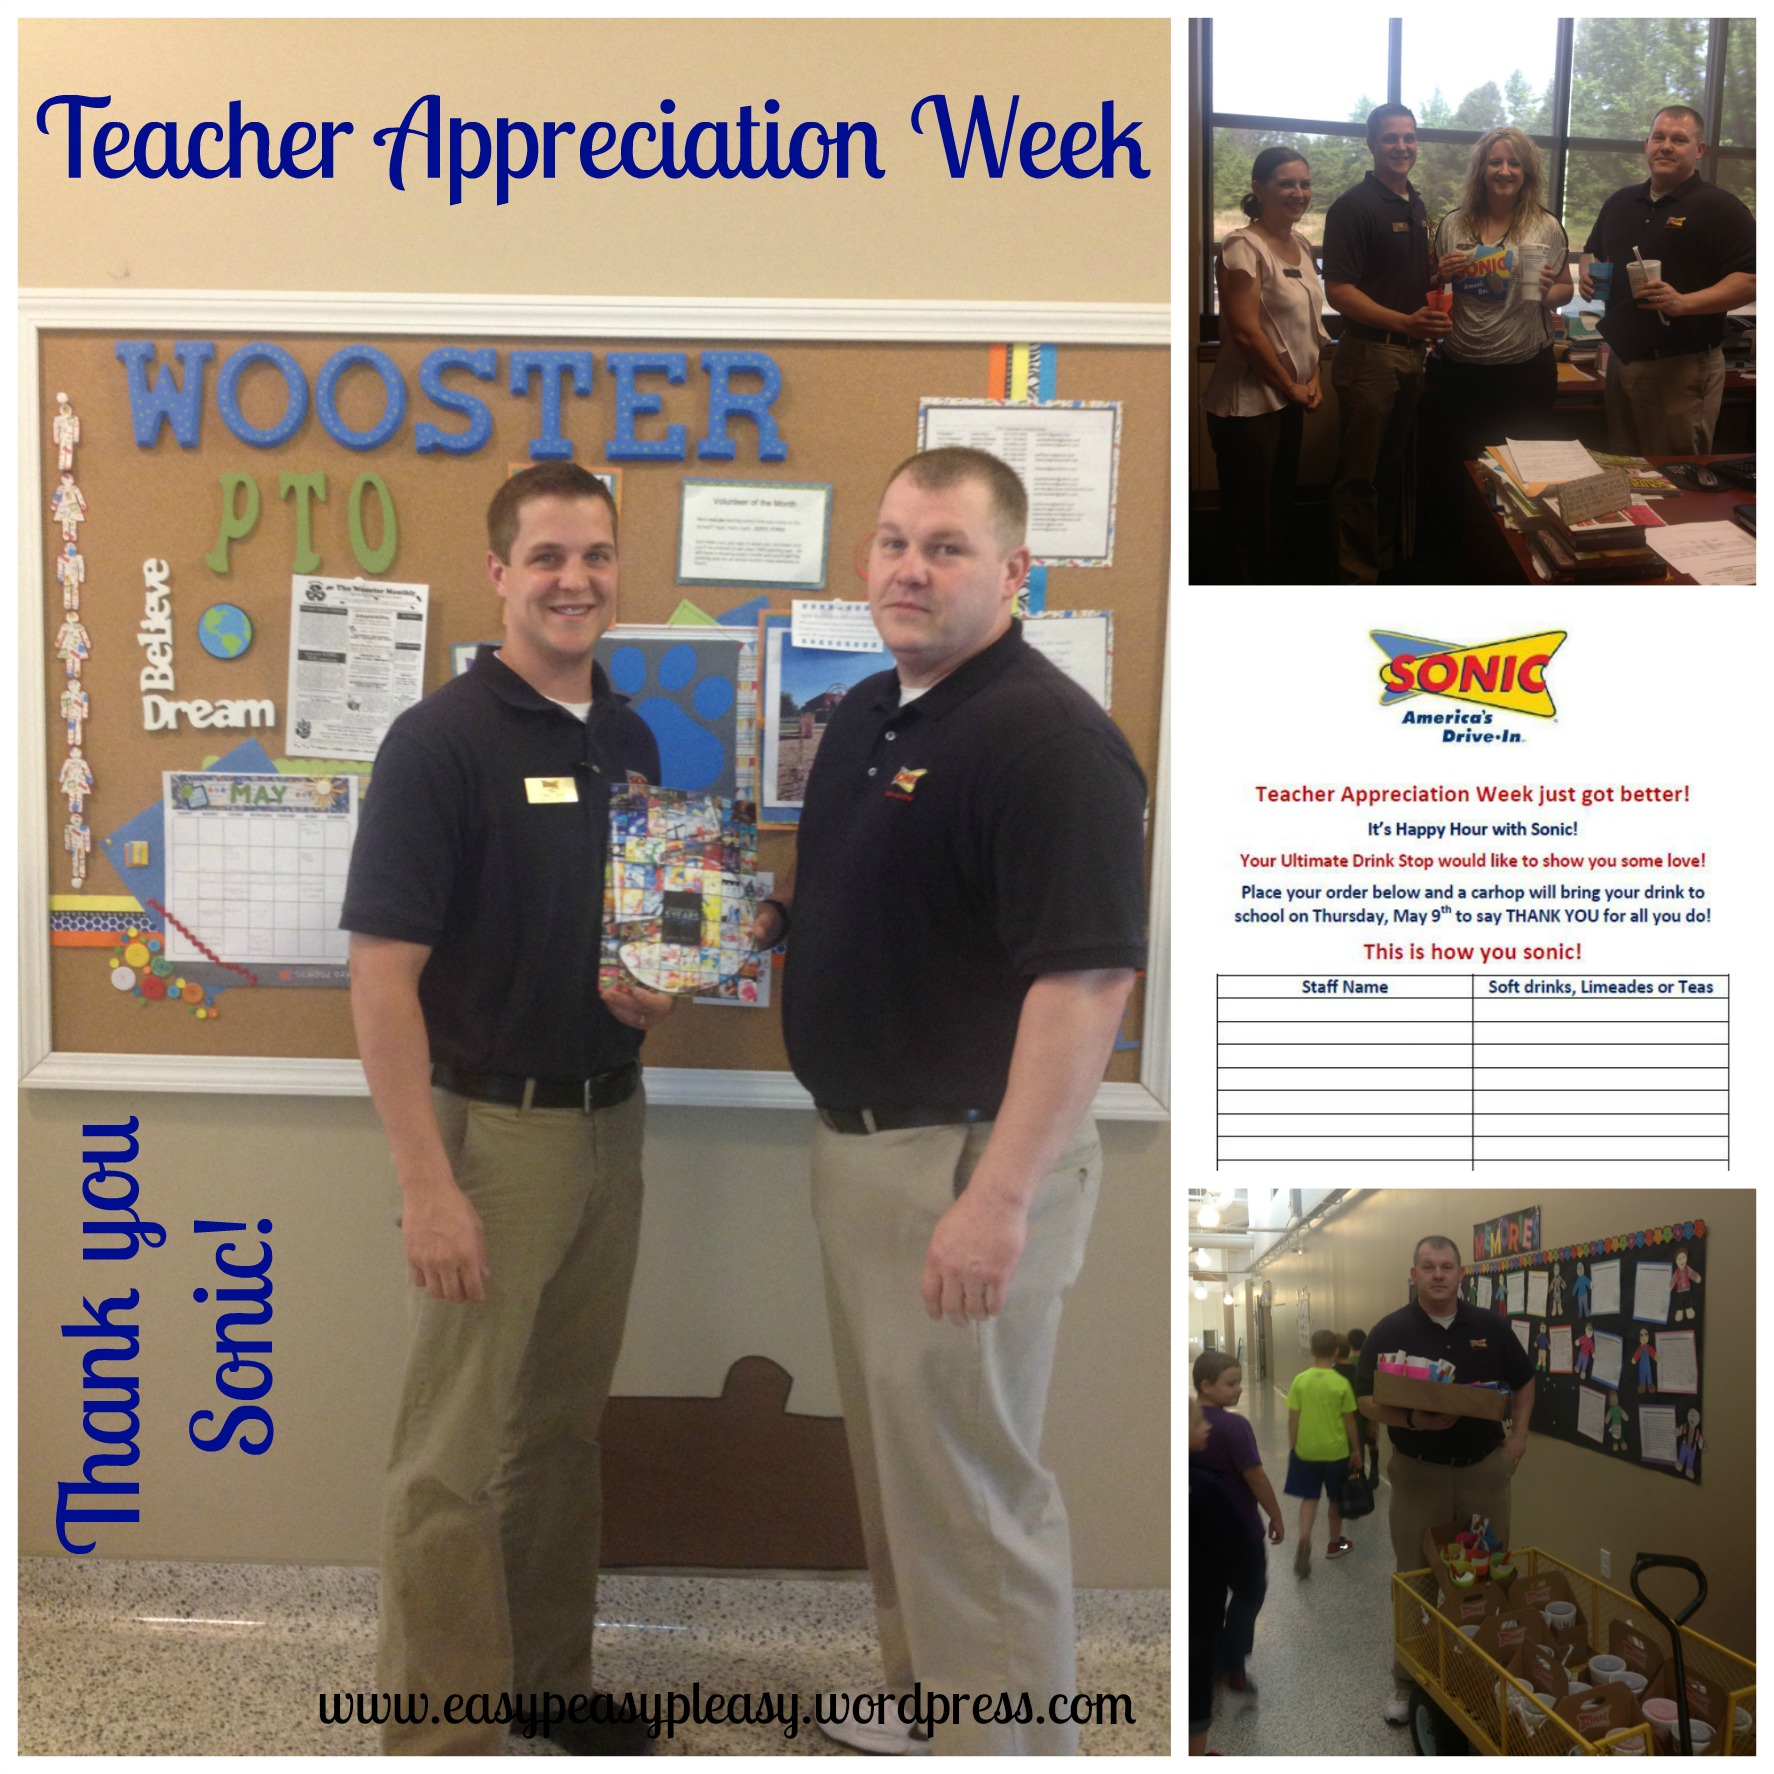 Teacher Appreciation Week Sonic drink donation